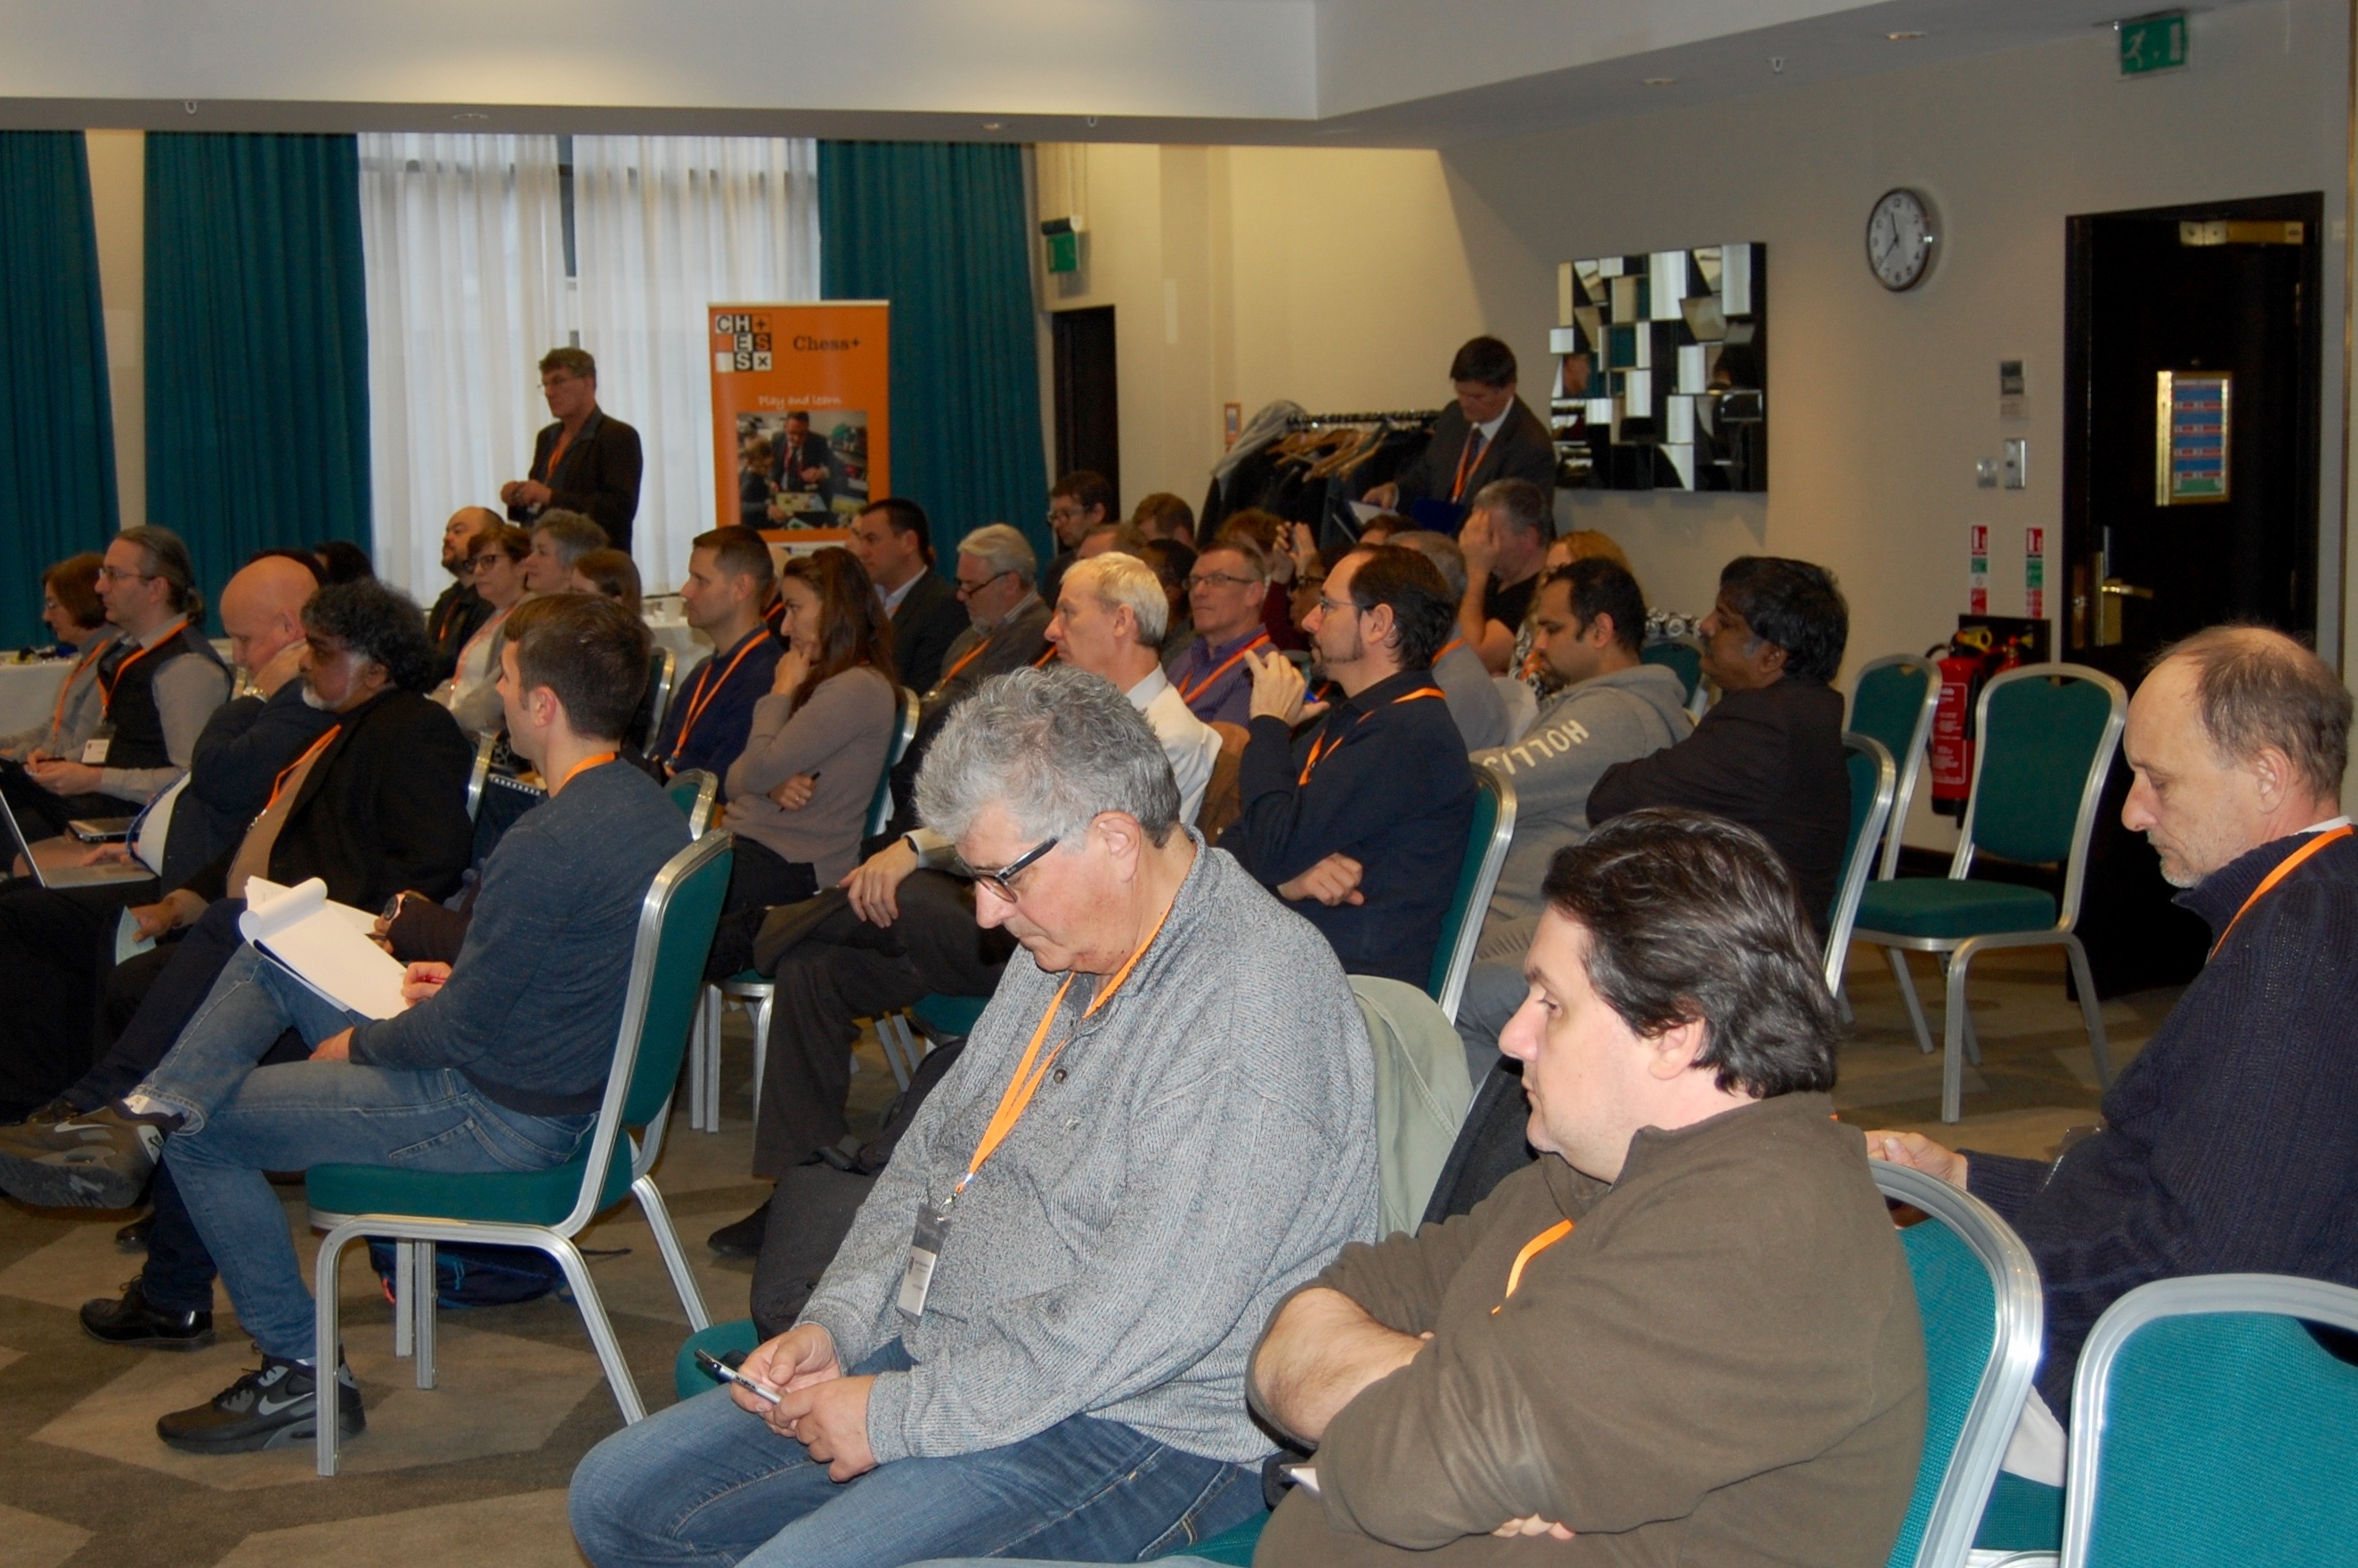 Expectant seminar room at the London Chess Conference